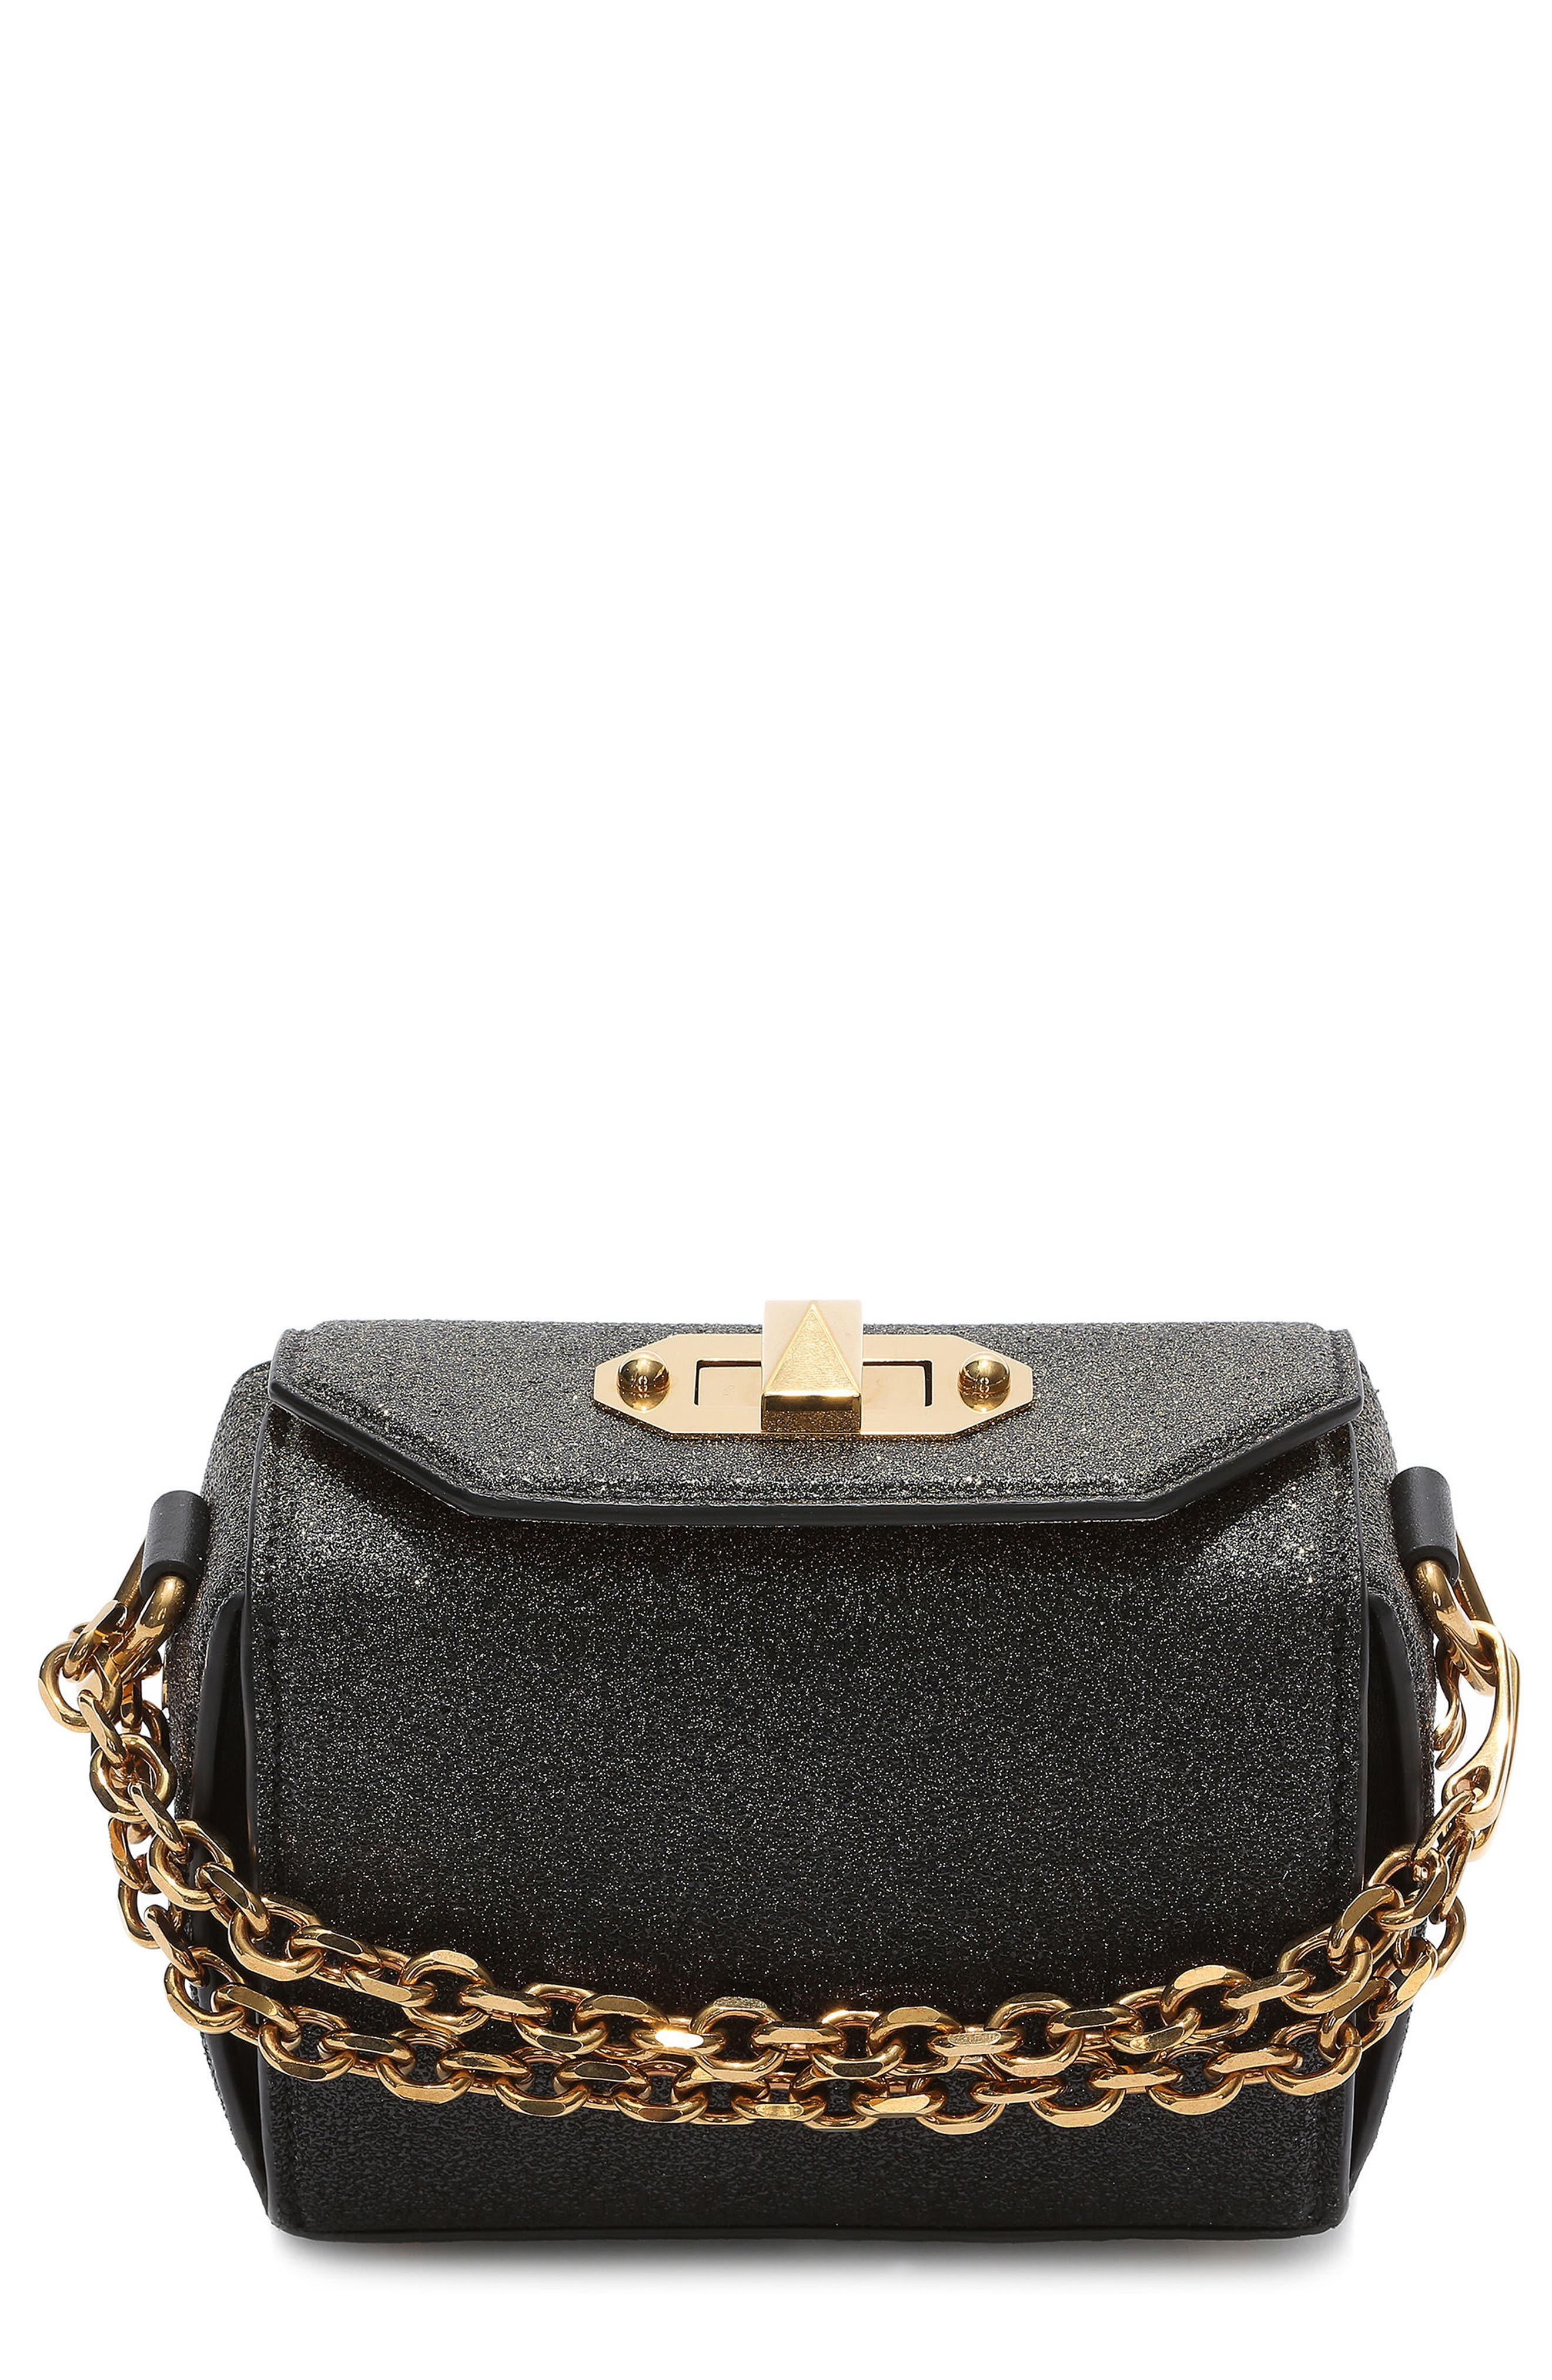 Alternate Image 1 Selected - Alexander McQueen Mini Leather Box Bag